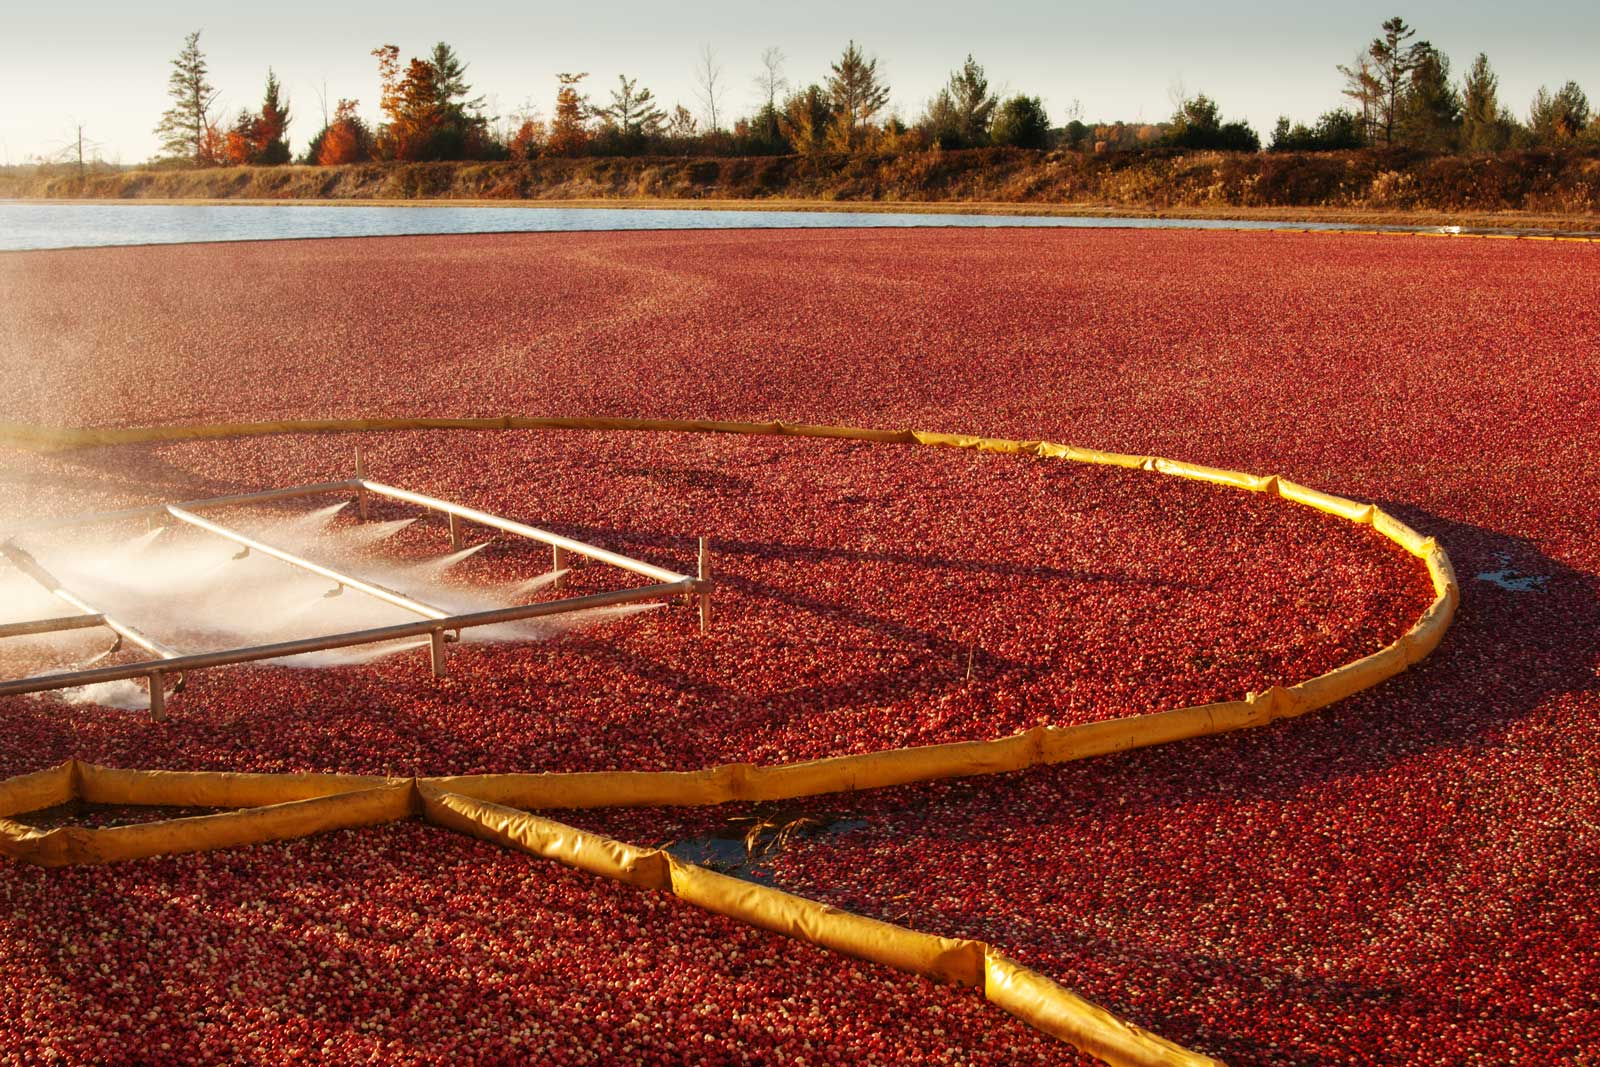 Cranberries floating in a bog as they are being harvested.